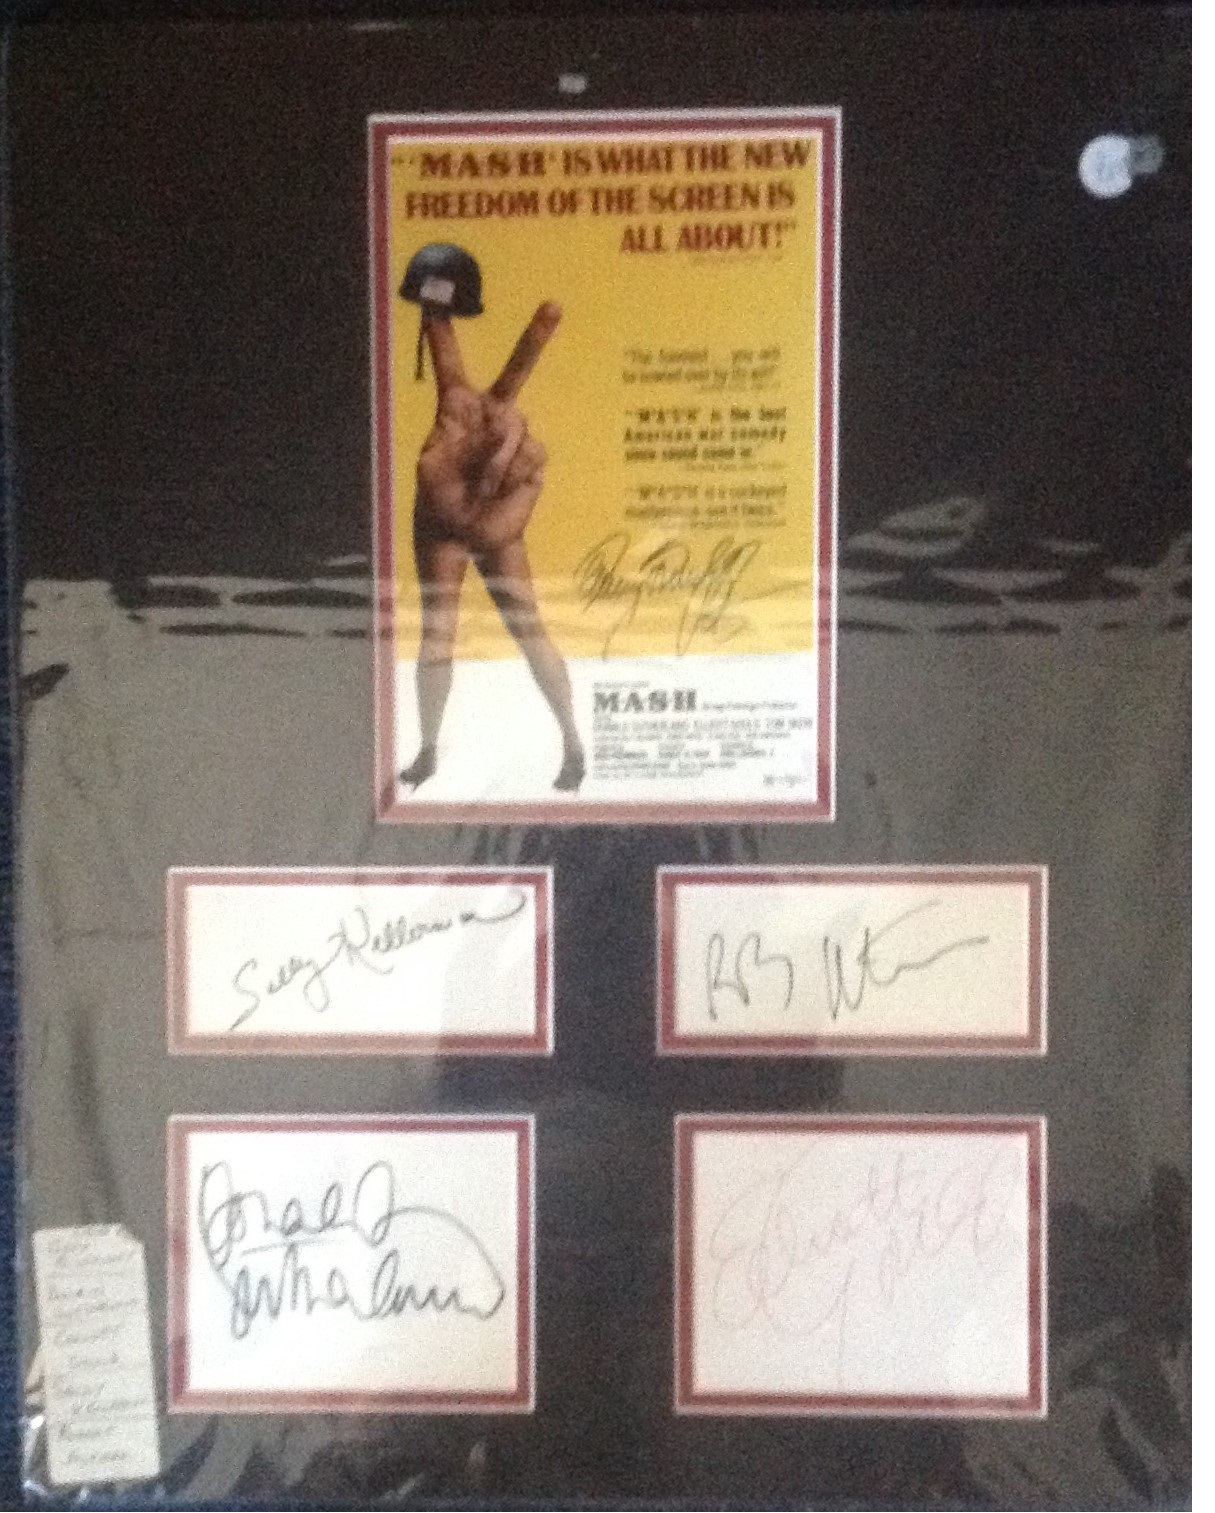 Lot 40 - Mash 20x16 overall signature piece from the hit 1970 movie signed by stars Gary Burghoff, Donald